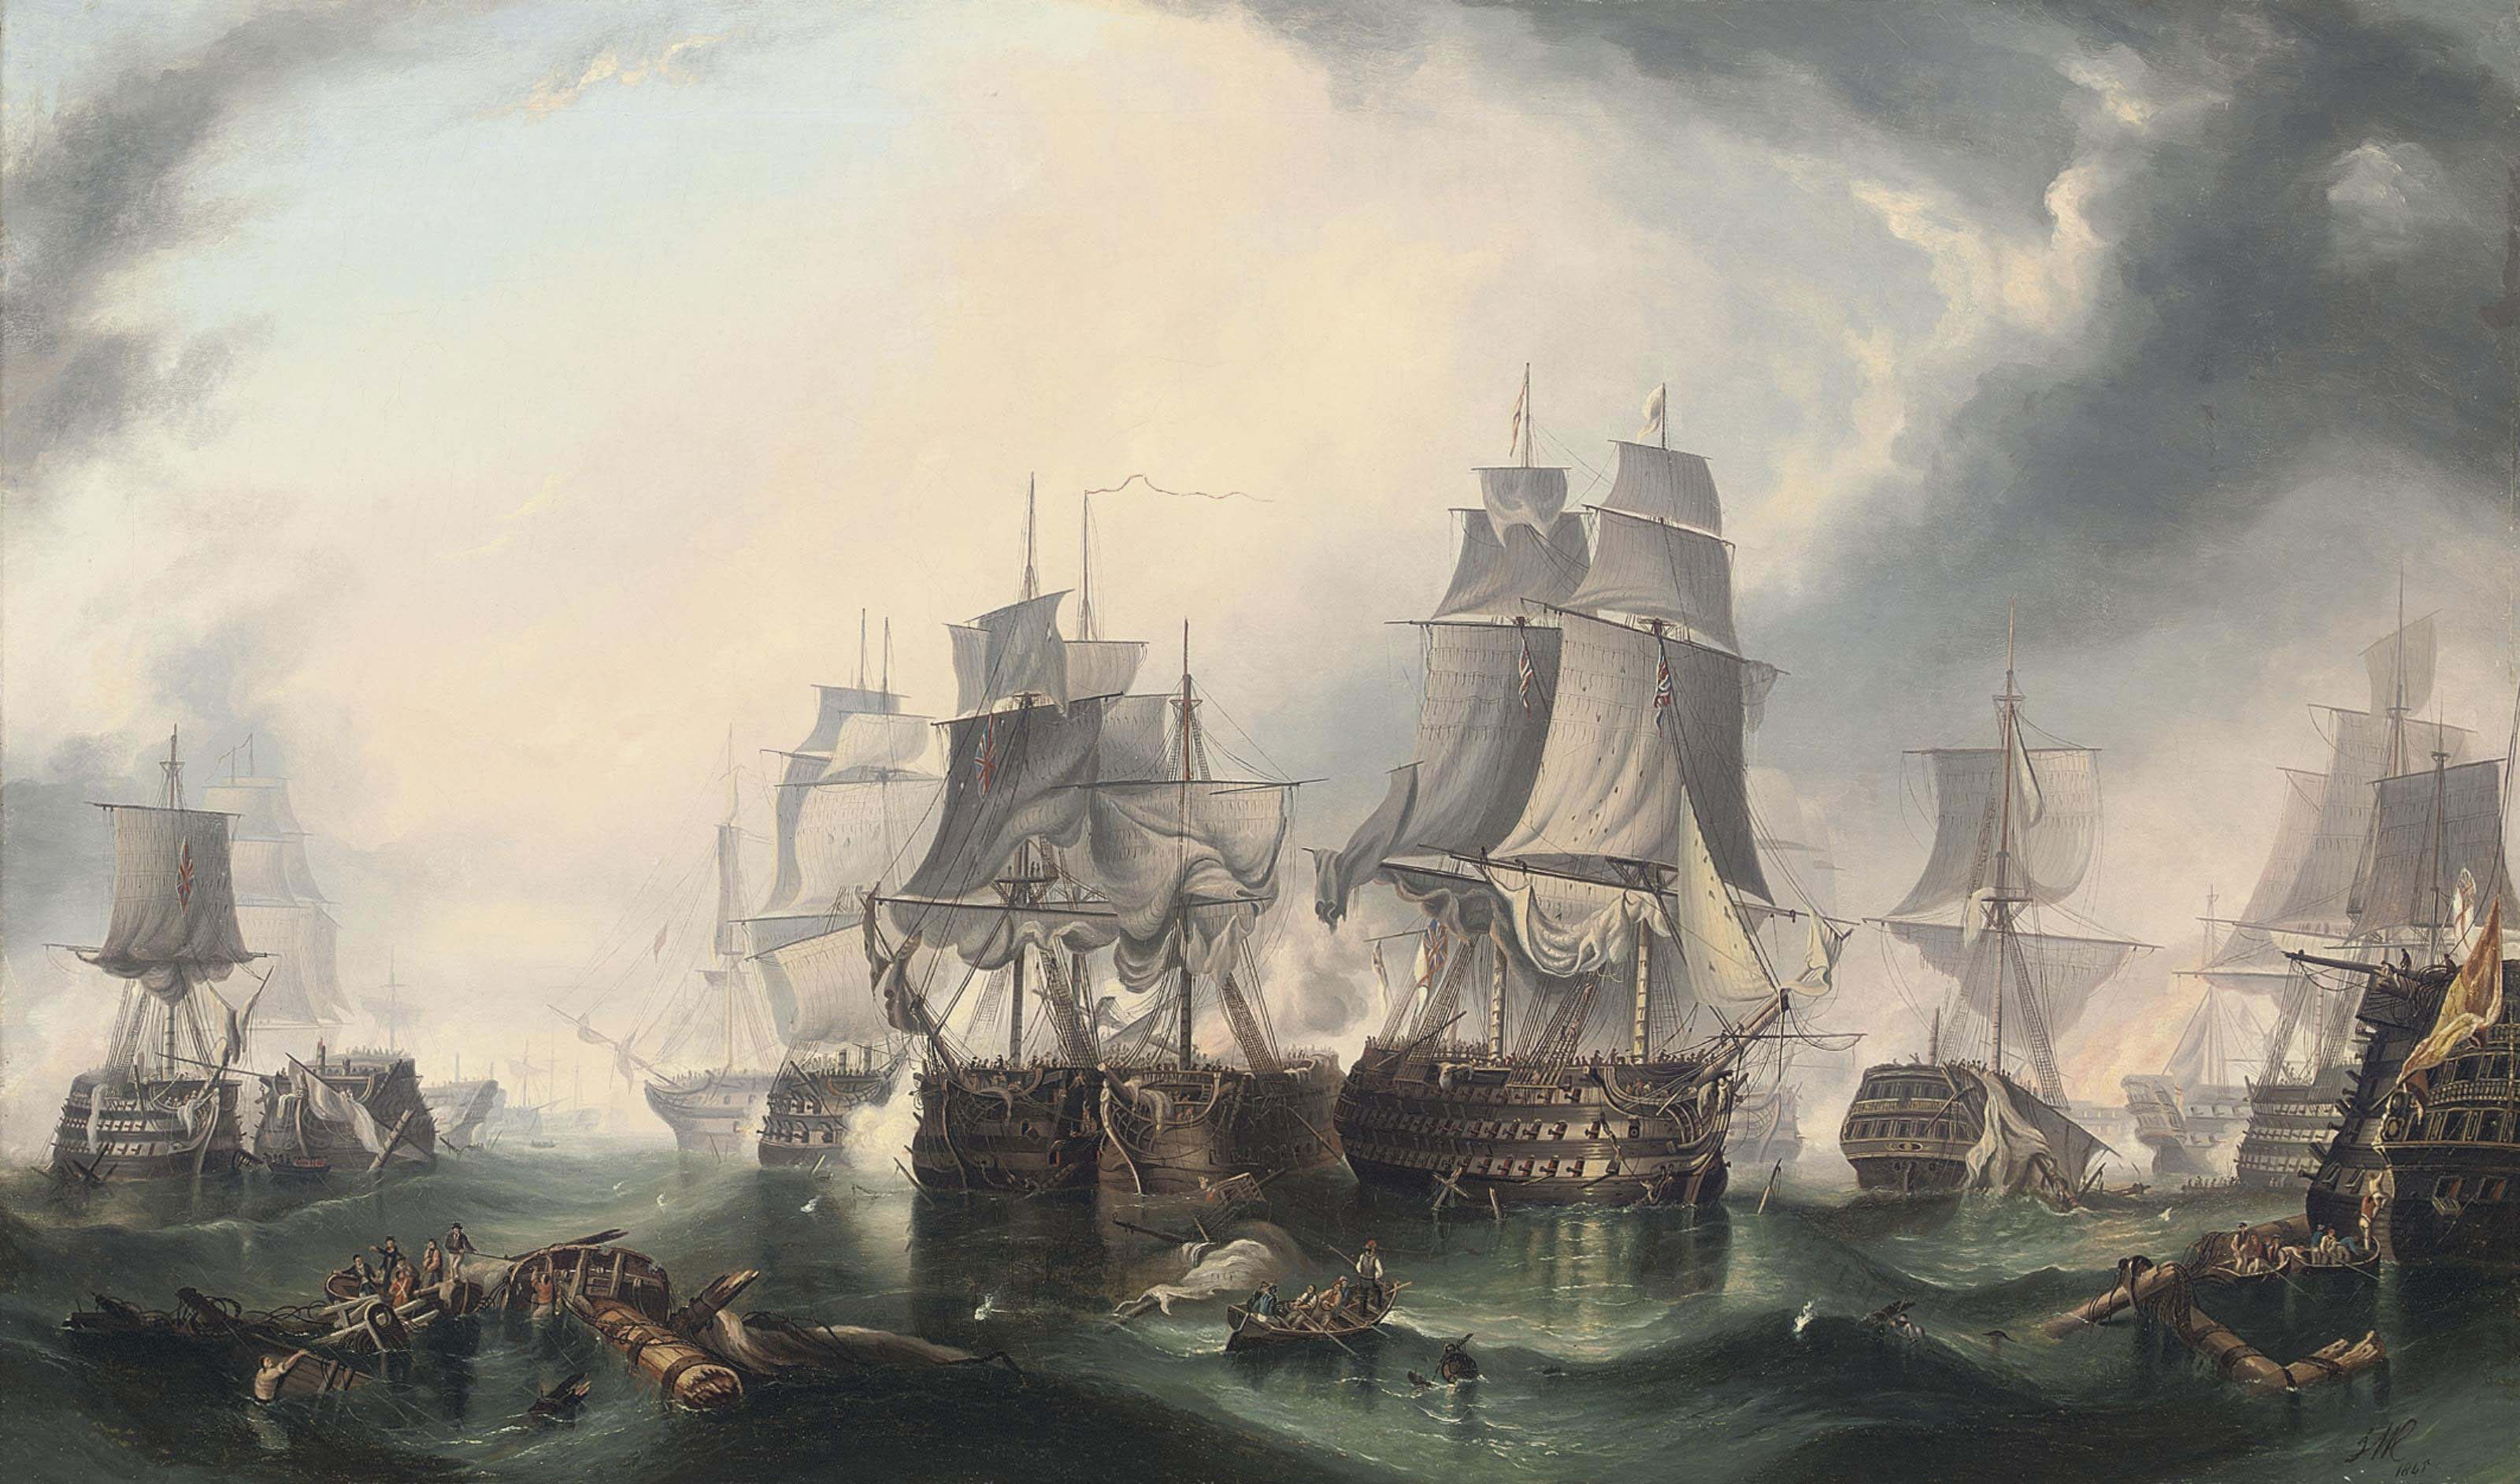 Trafalgar, in the heat of battle, 21st October 1805